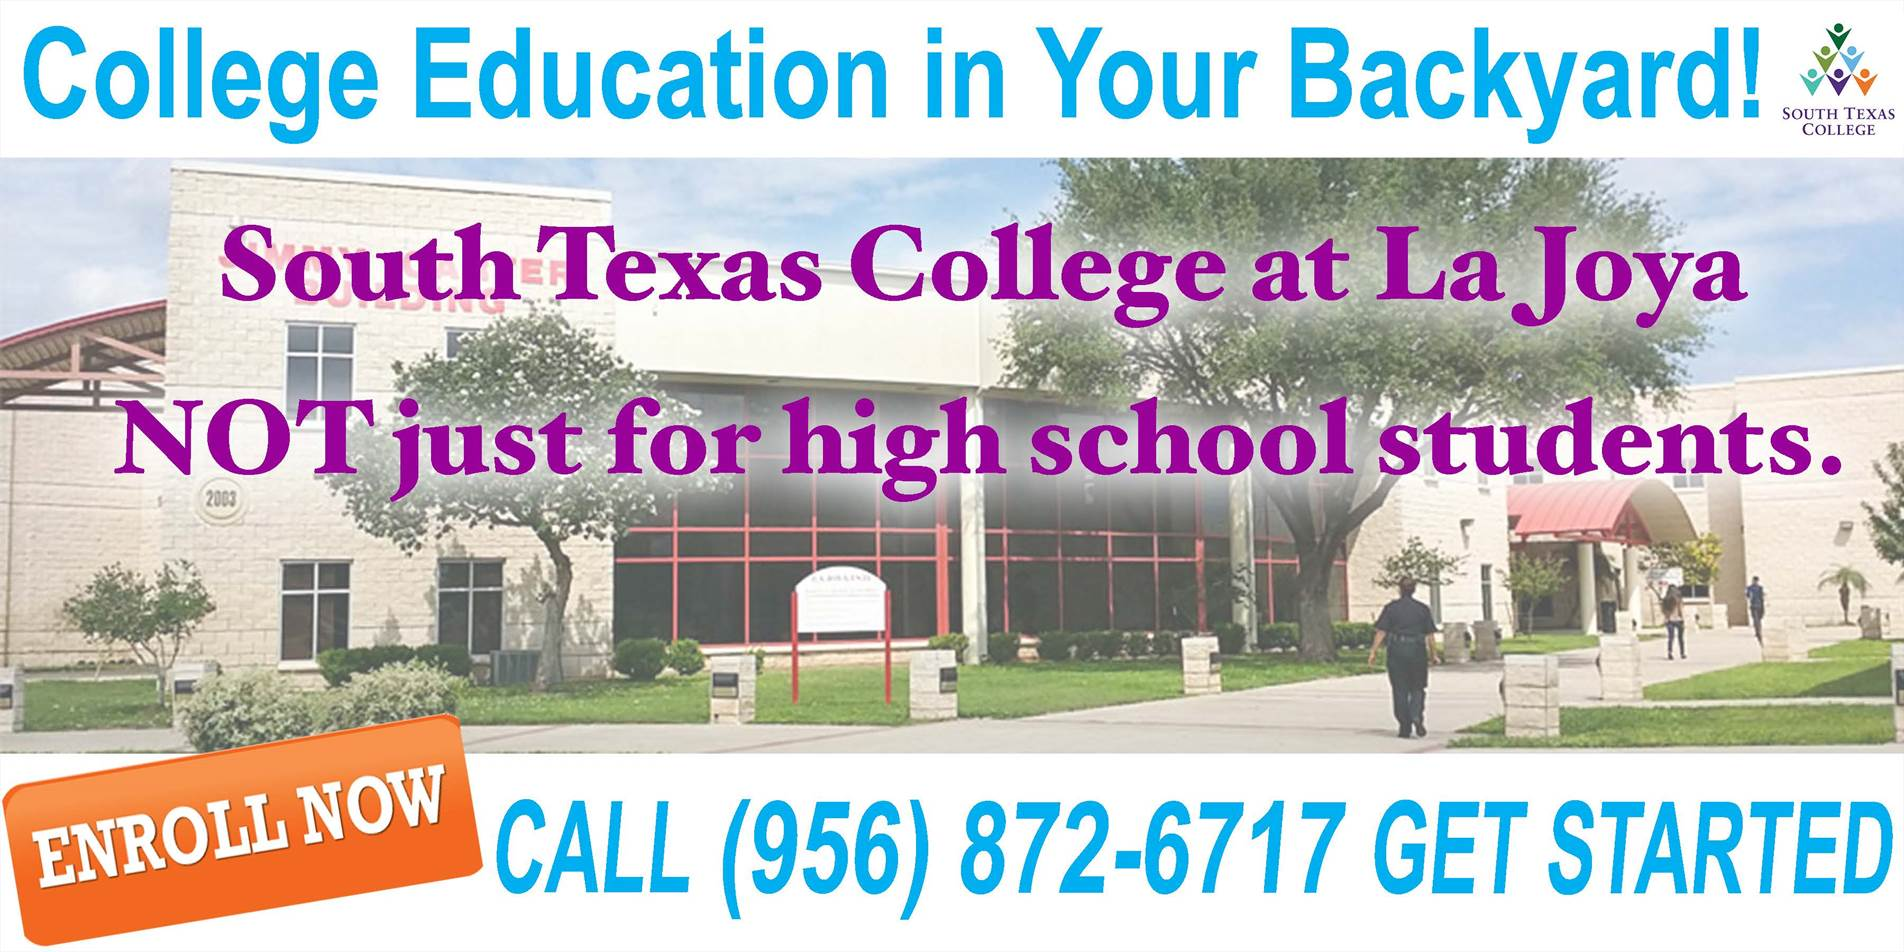 STC - Enroll Now